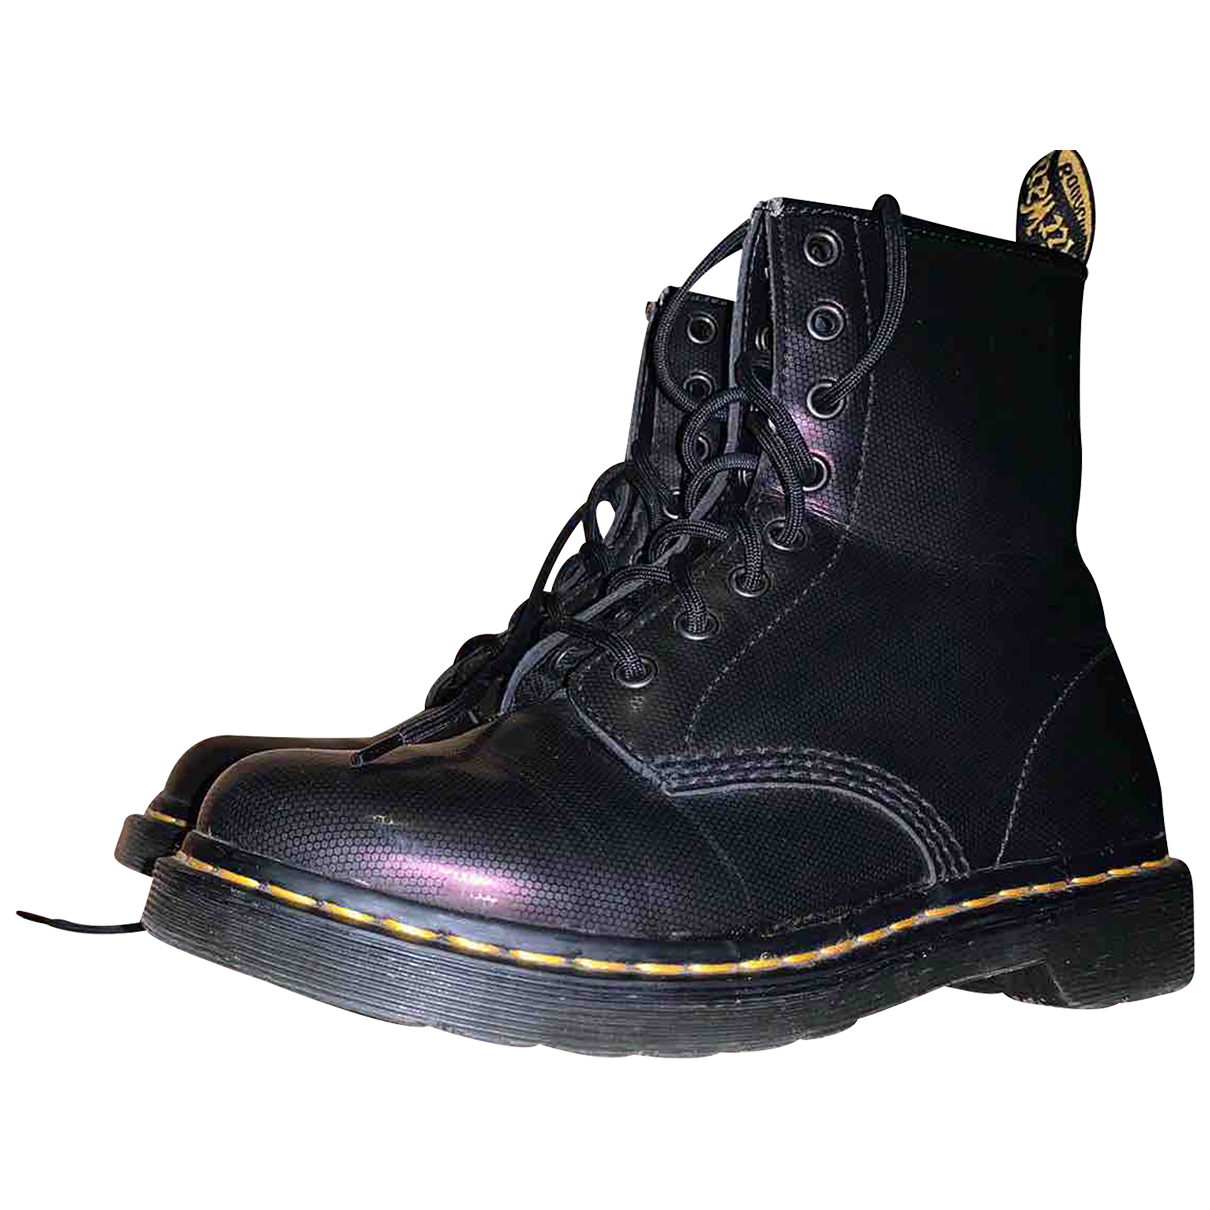 Dr. Martens N Purple Leather Ankle boots for Women 40 EU